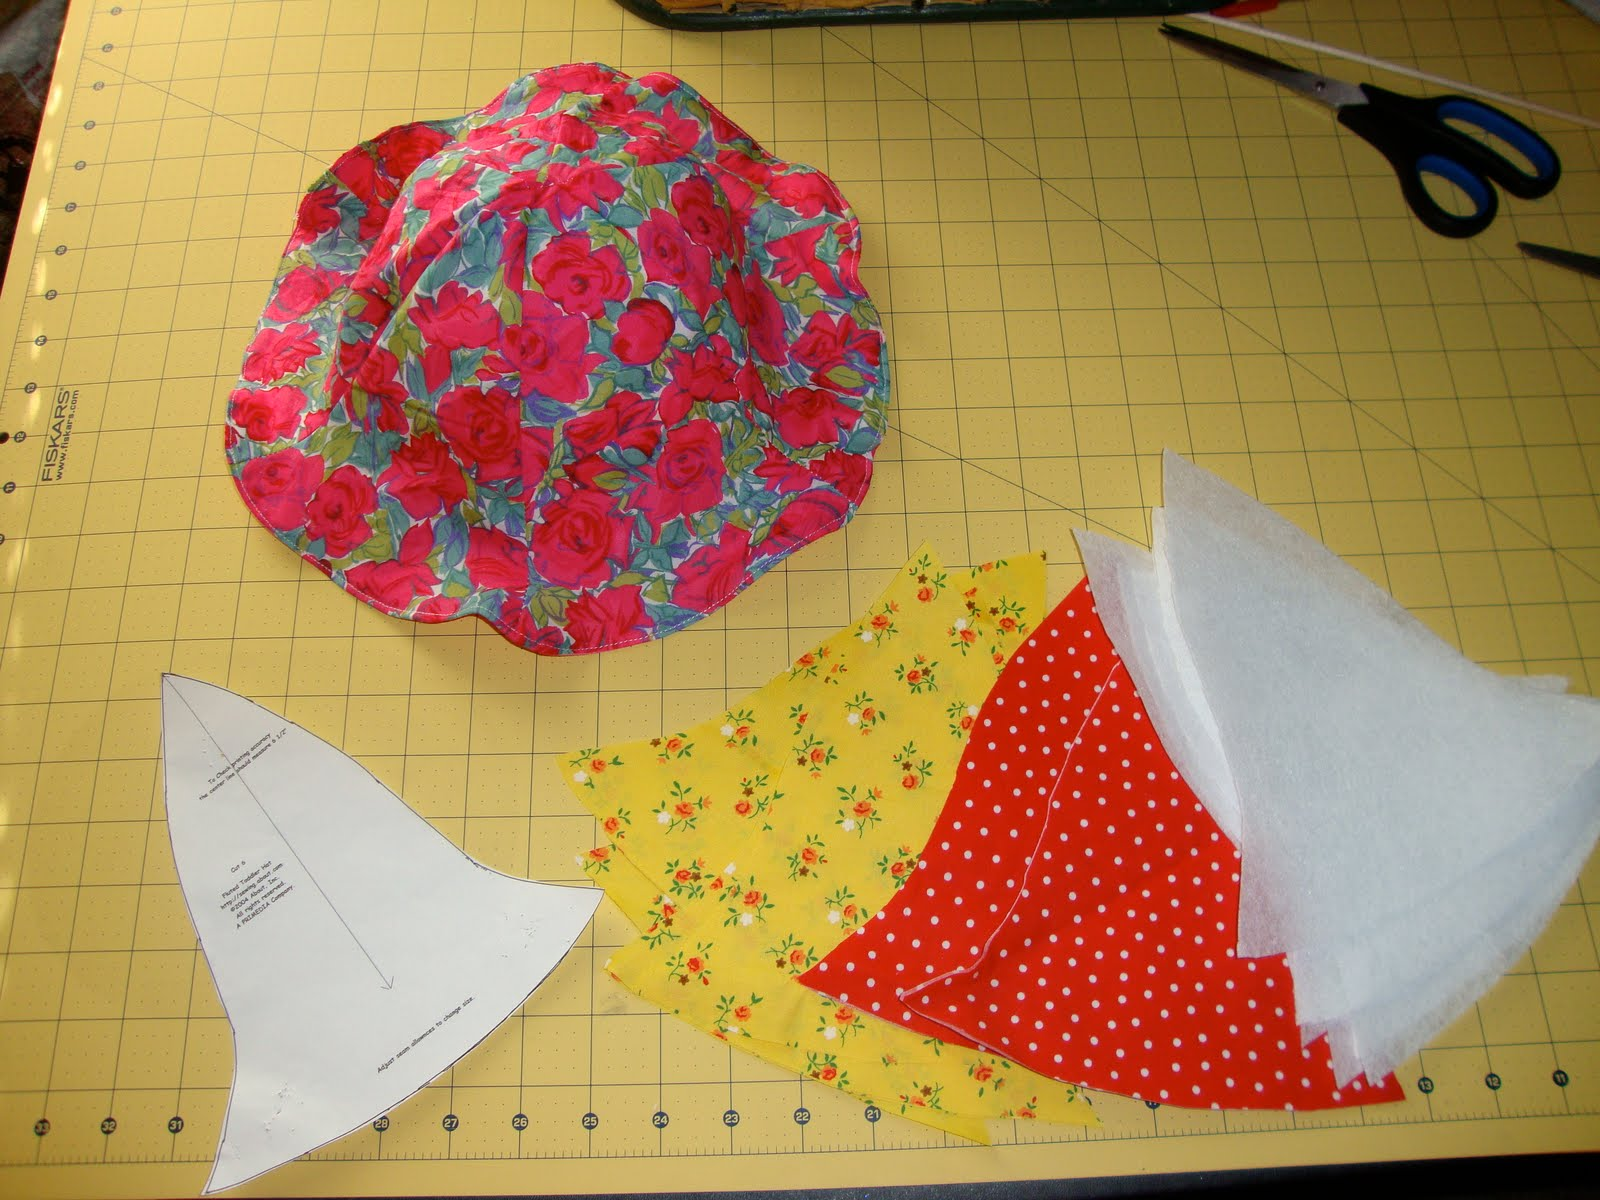 Bethany sew and sew simple toddler sun hat tutorial only 6 steps simple toddler sun hat tutorial only 6 steps jeuxipadfo Choice Image